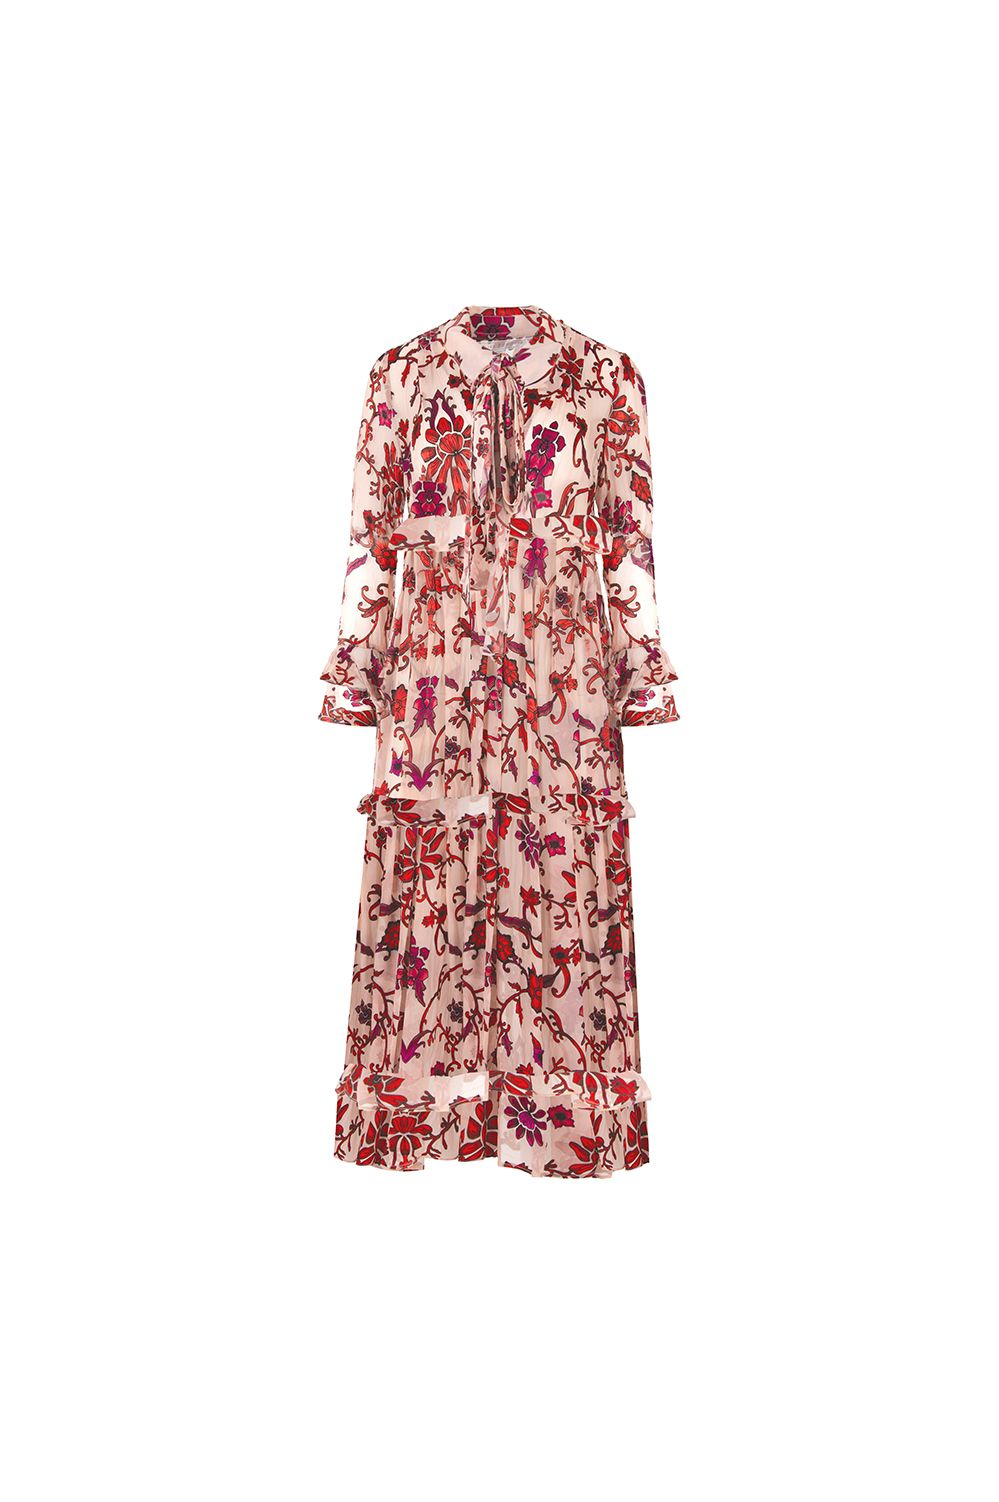 Trelise Cooper Frill The End Of Time Dress Pink Floral | Shop at Wallace and Gibbs